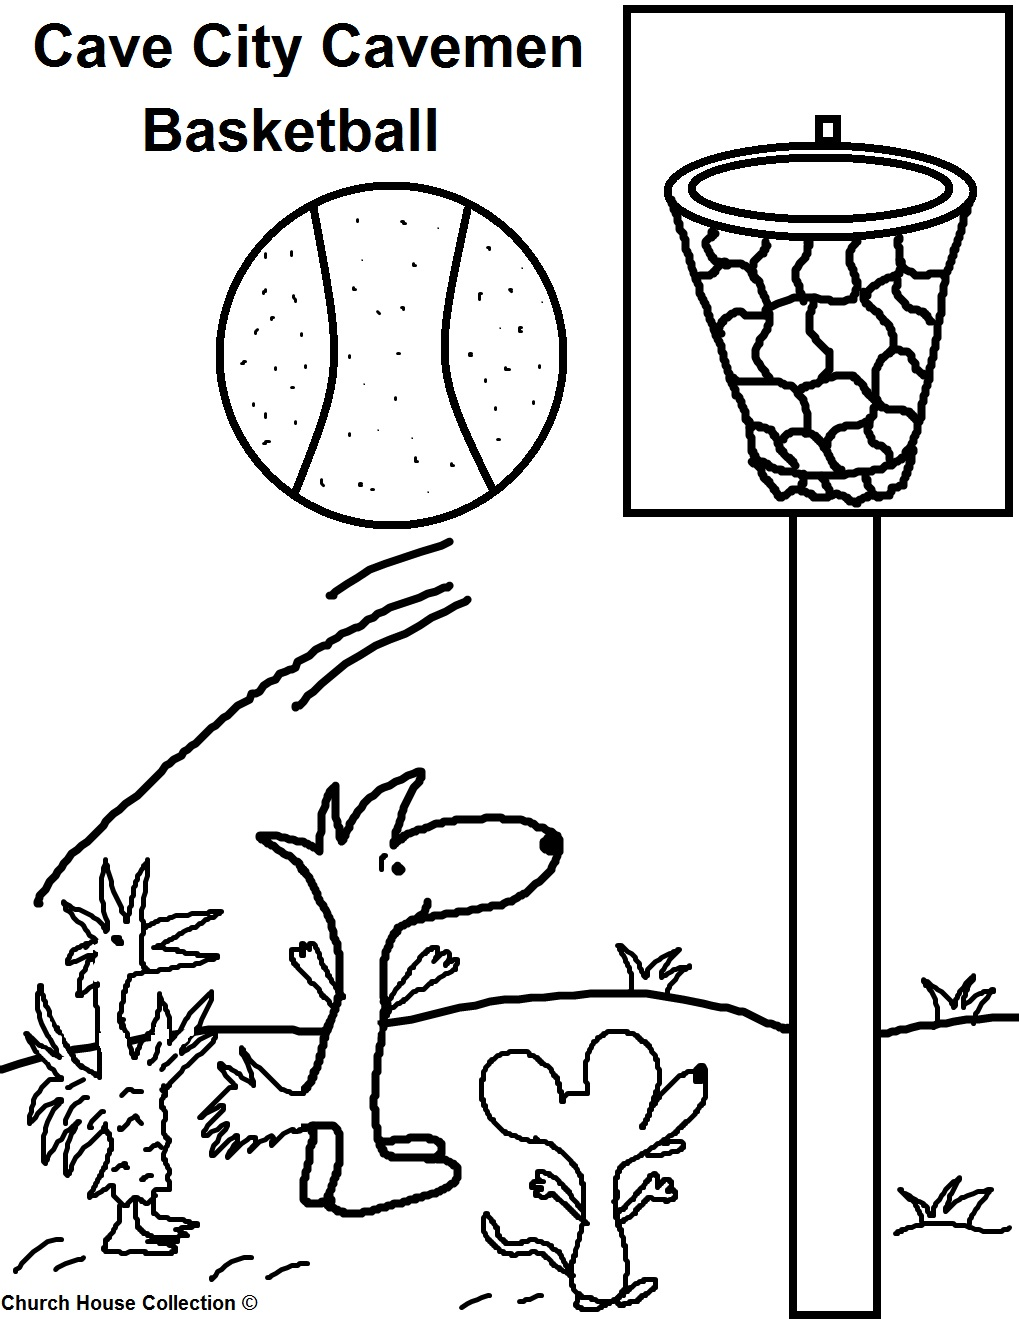 caveman coloring pages - photo#36